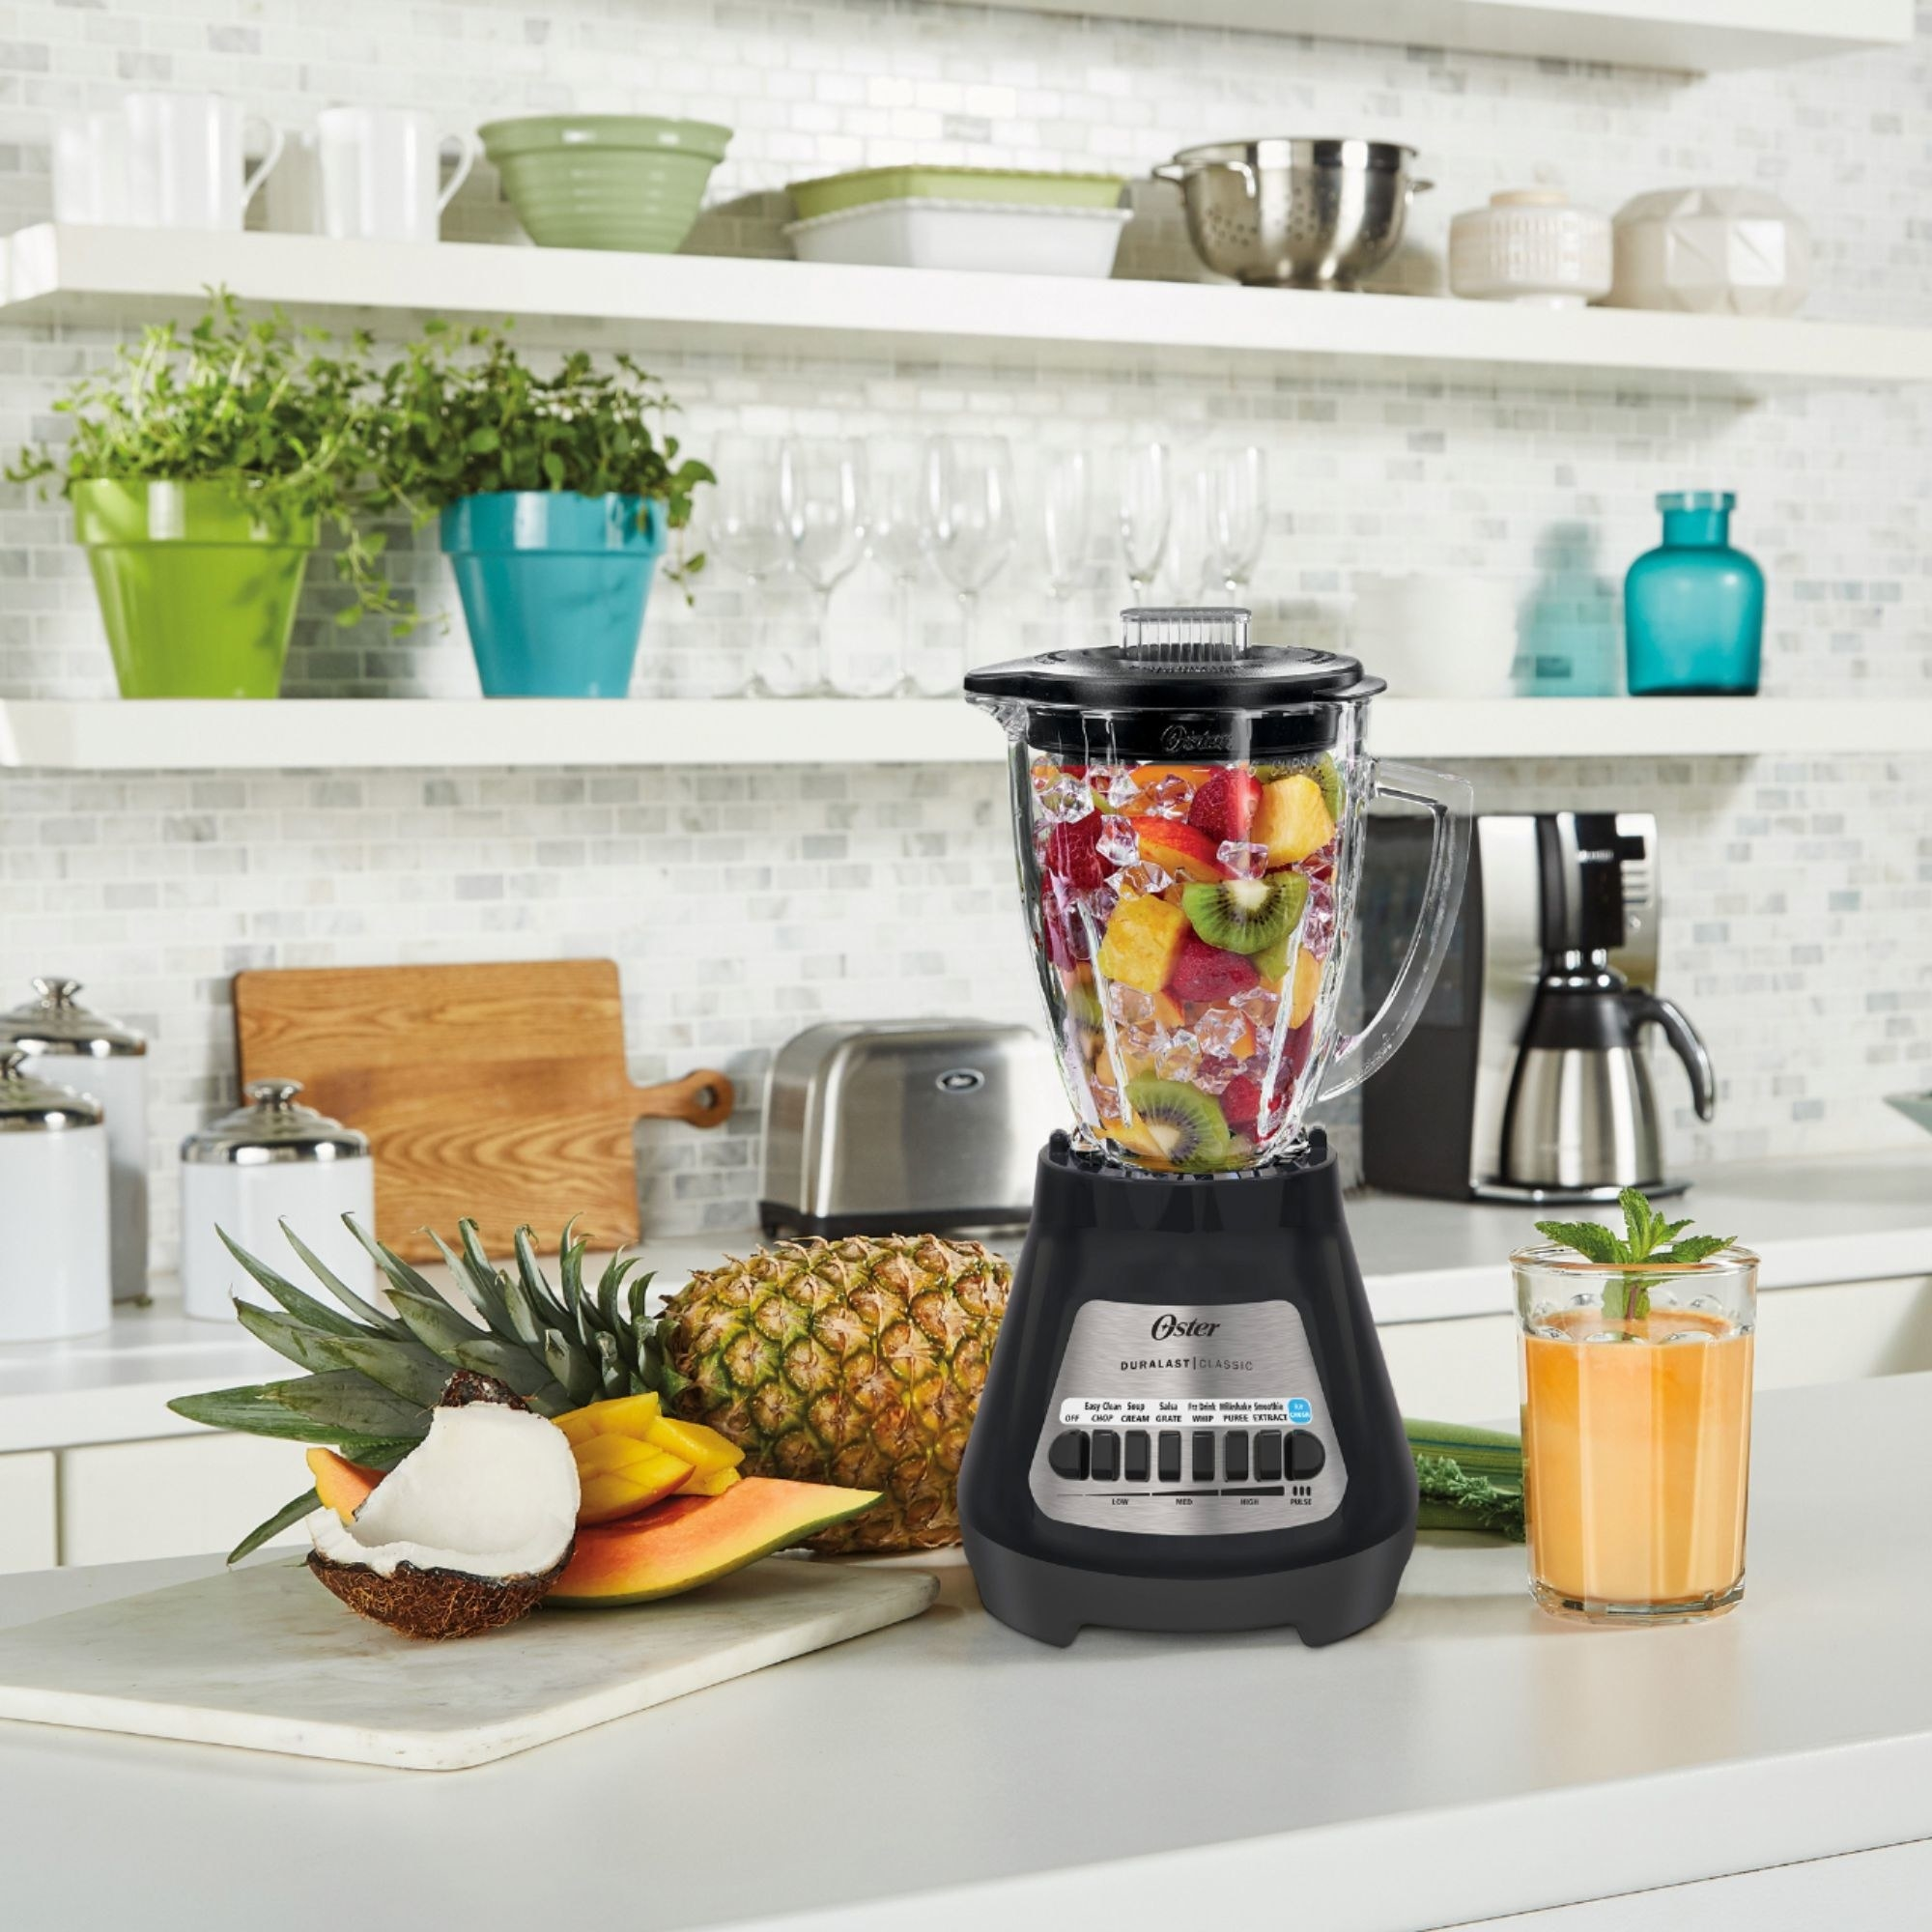 The blender mixing together ice and fruit